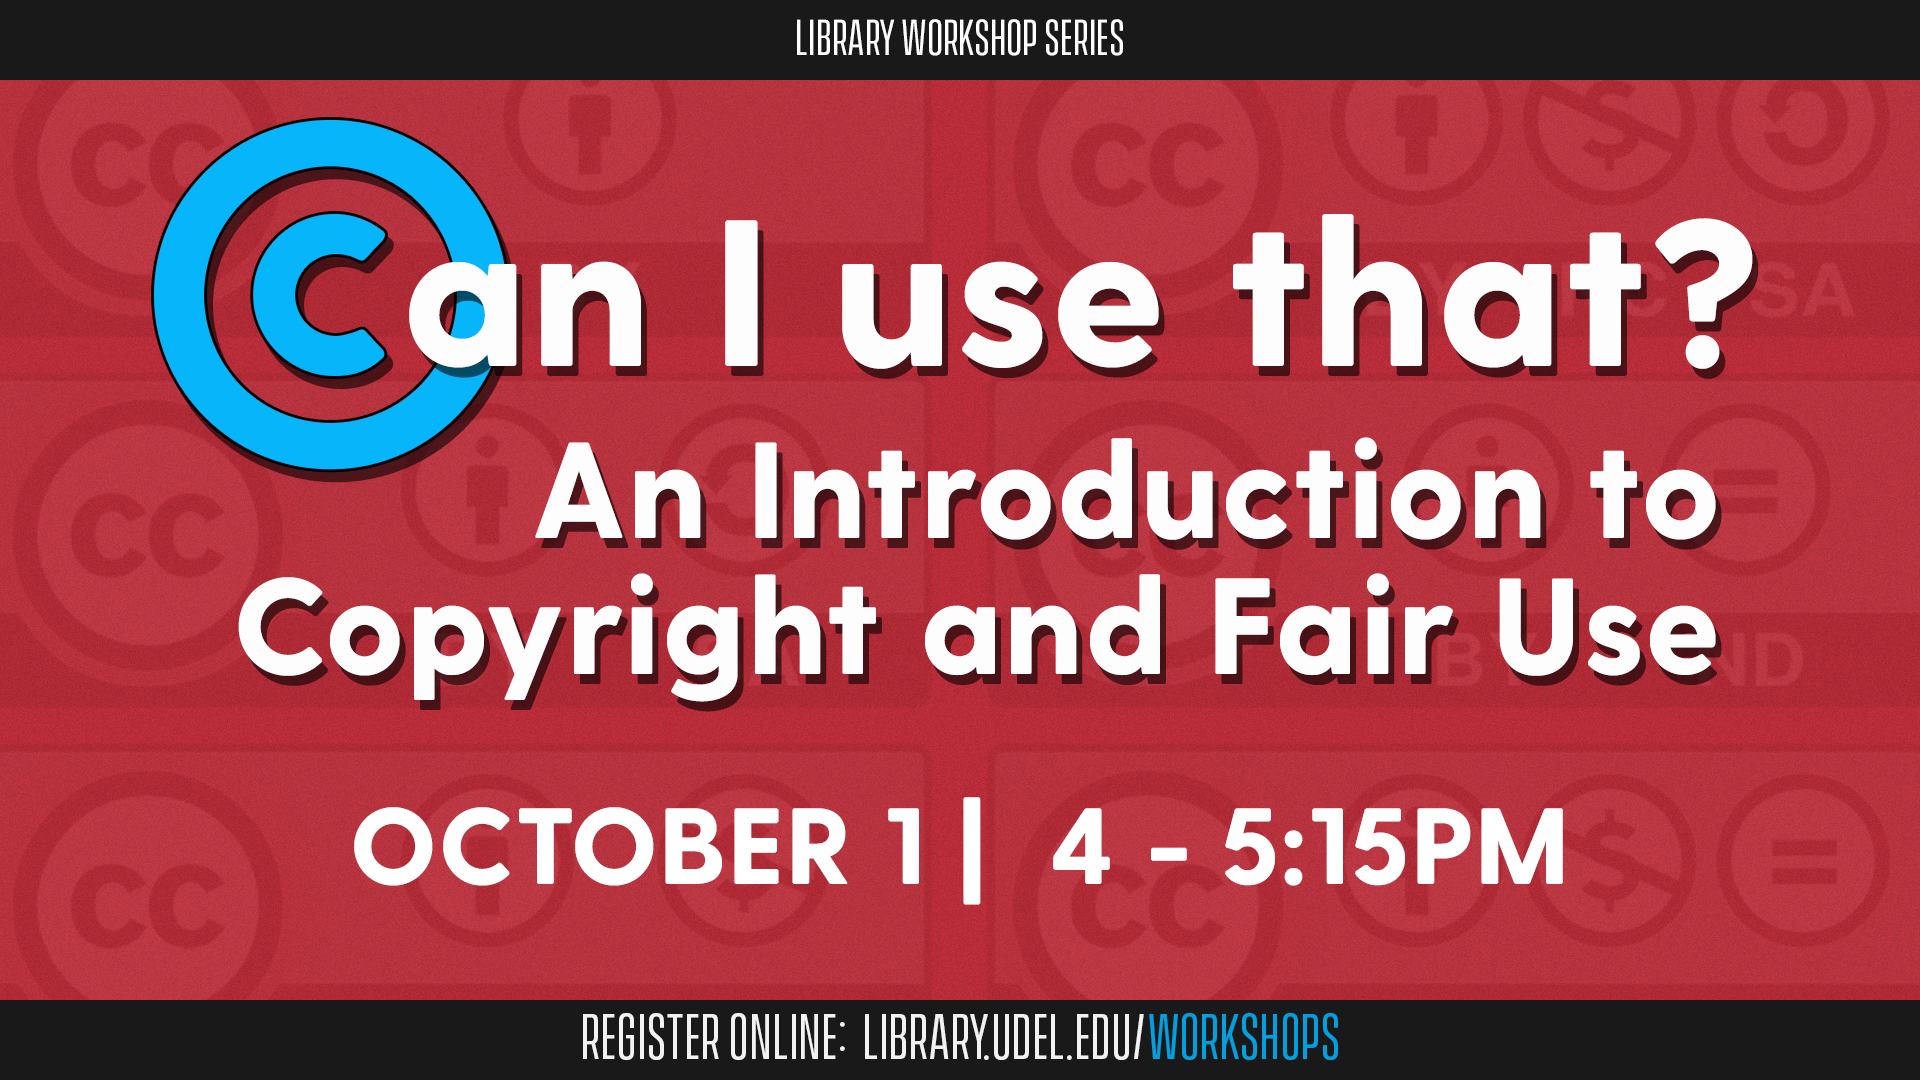 Can I Use That? An Introduction to Copyright and Fair Use